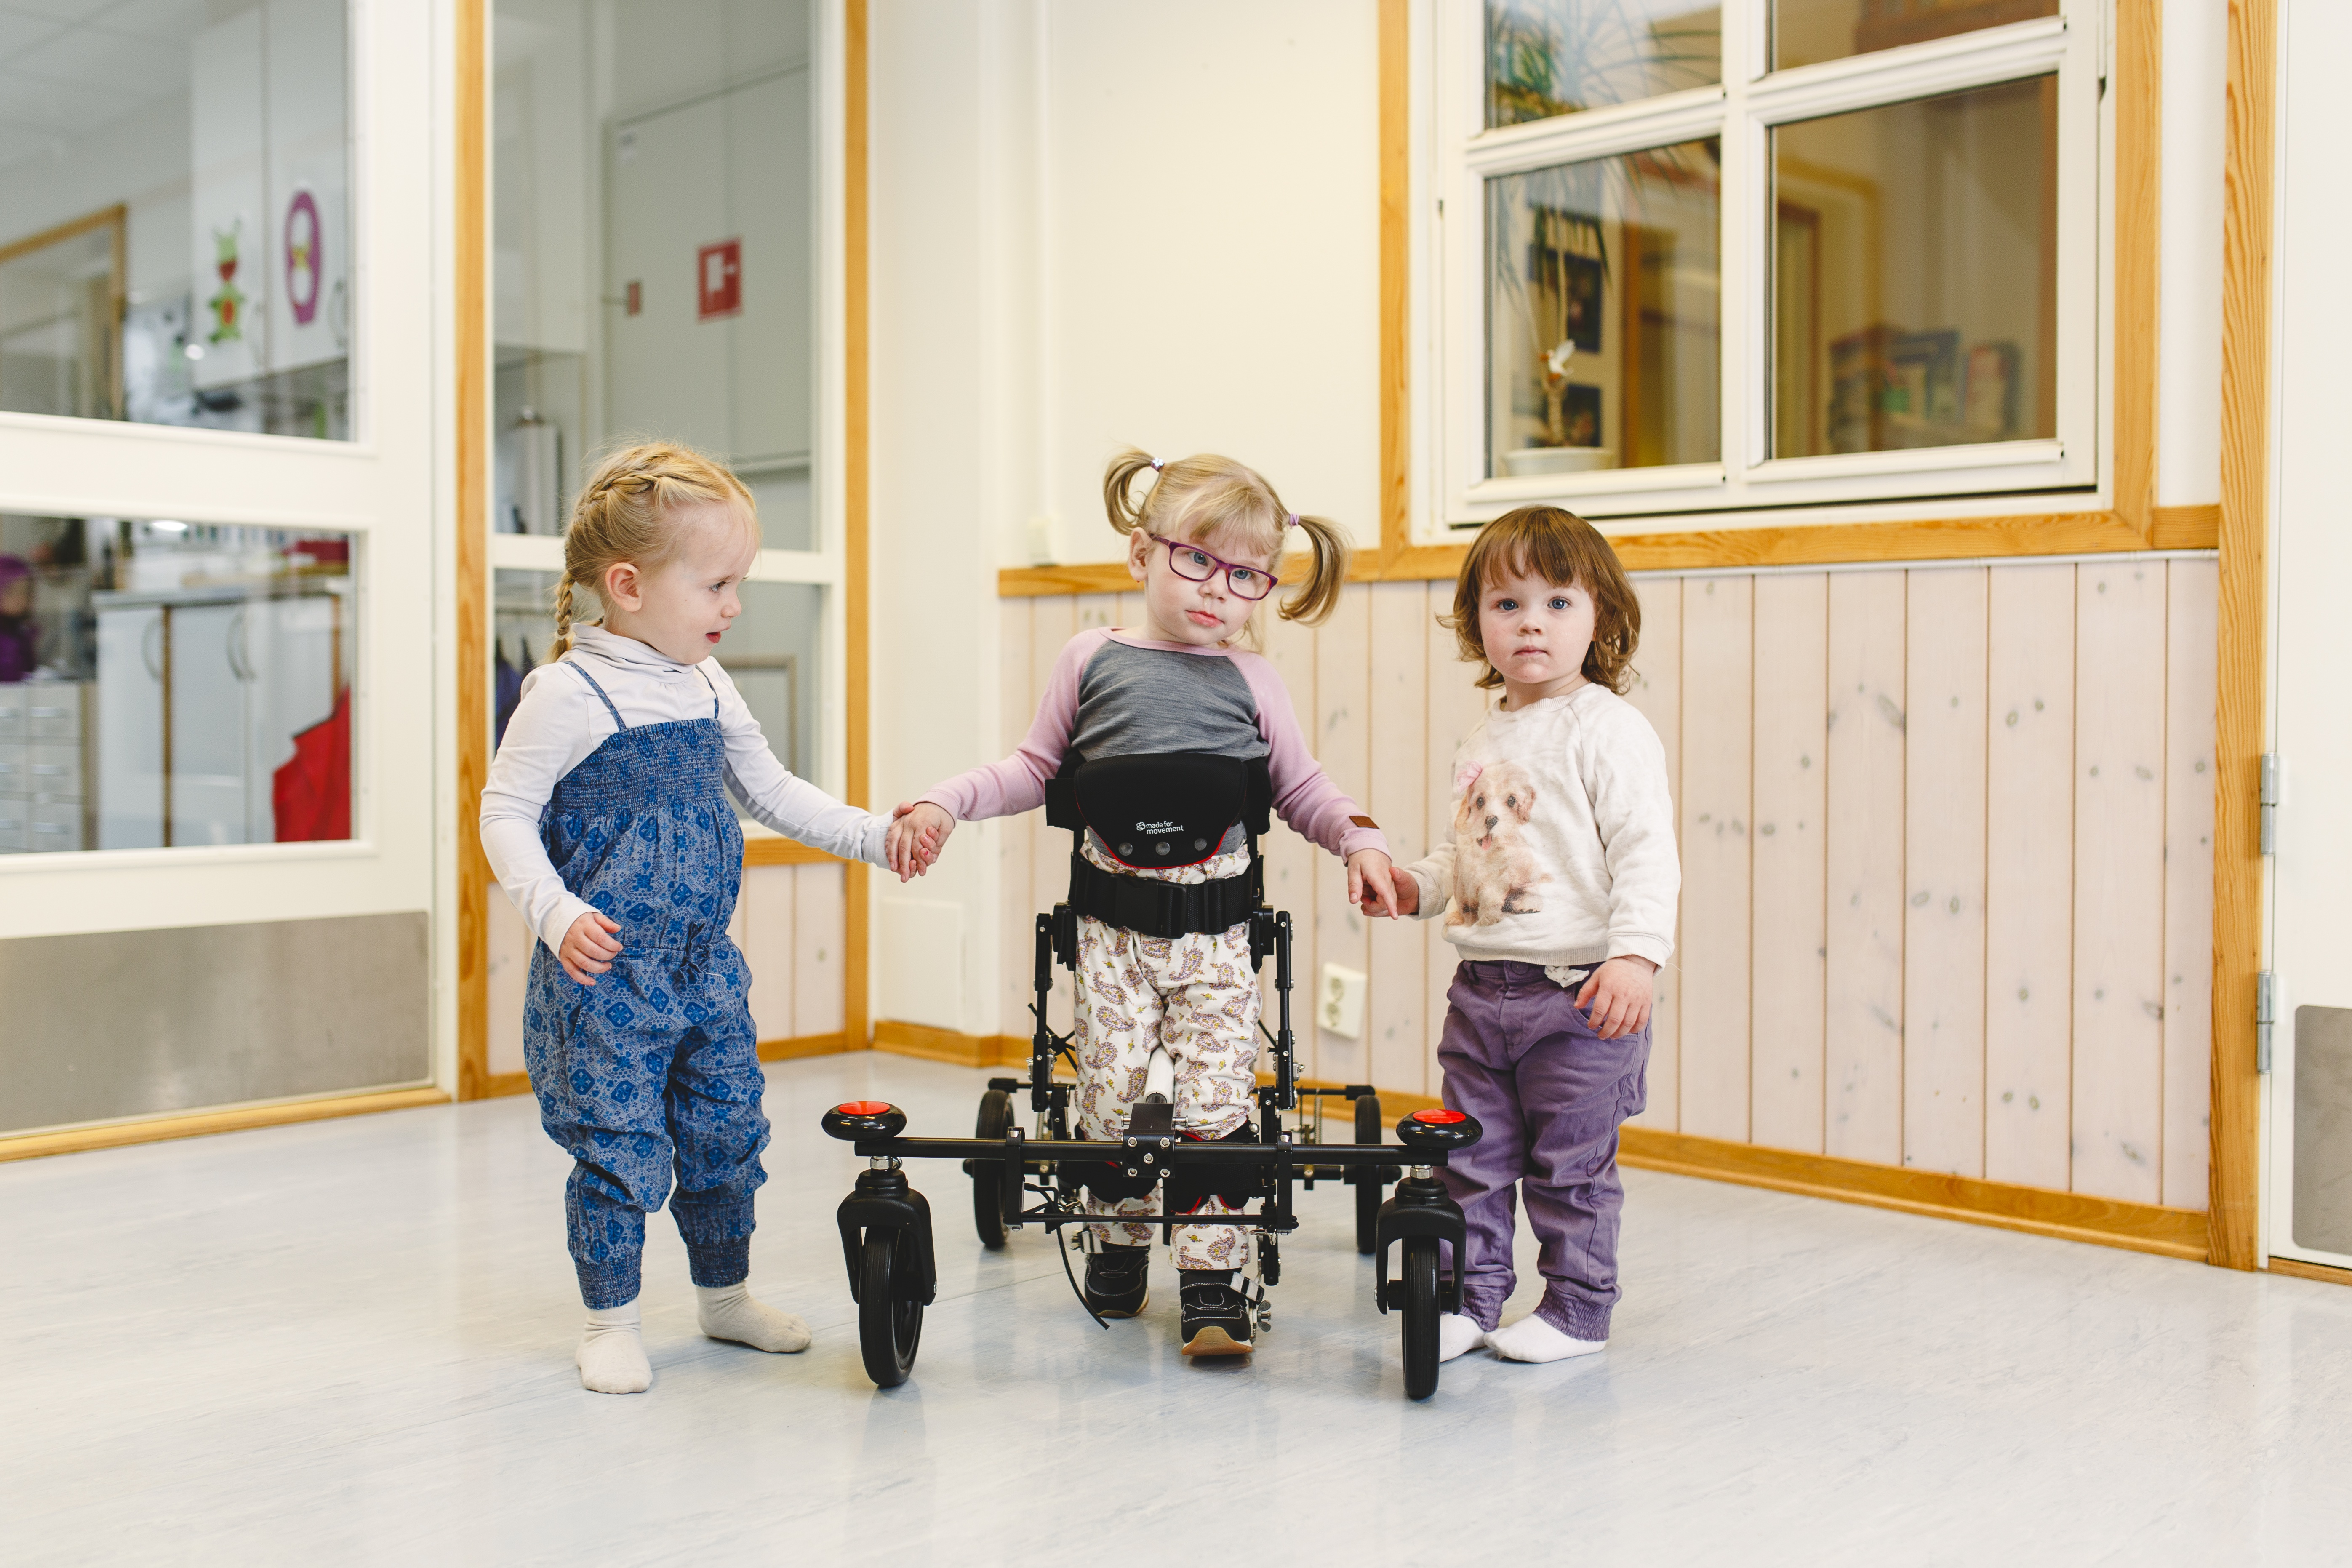 4 Benefits of Using the NF-Walker in Everyday Life